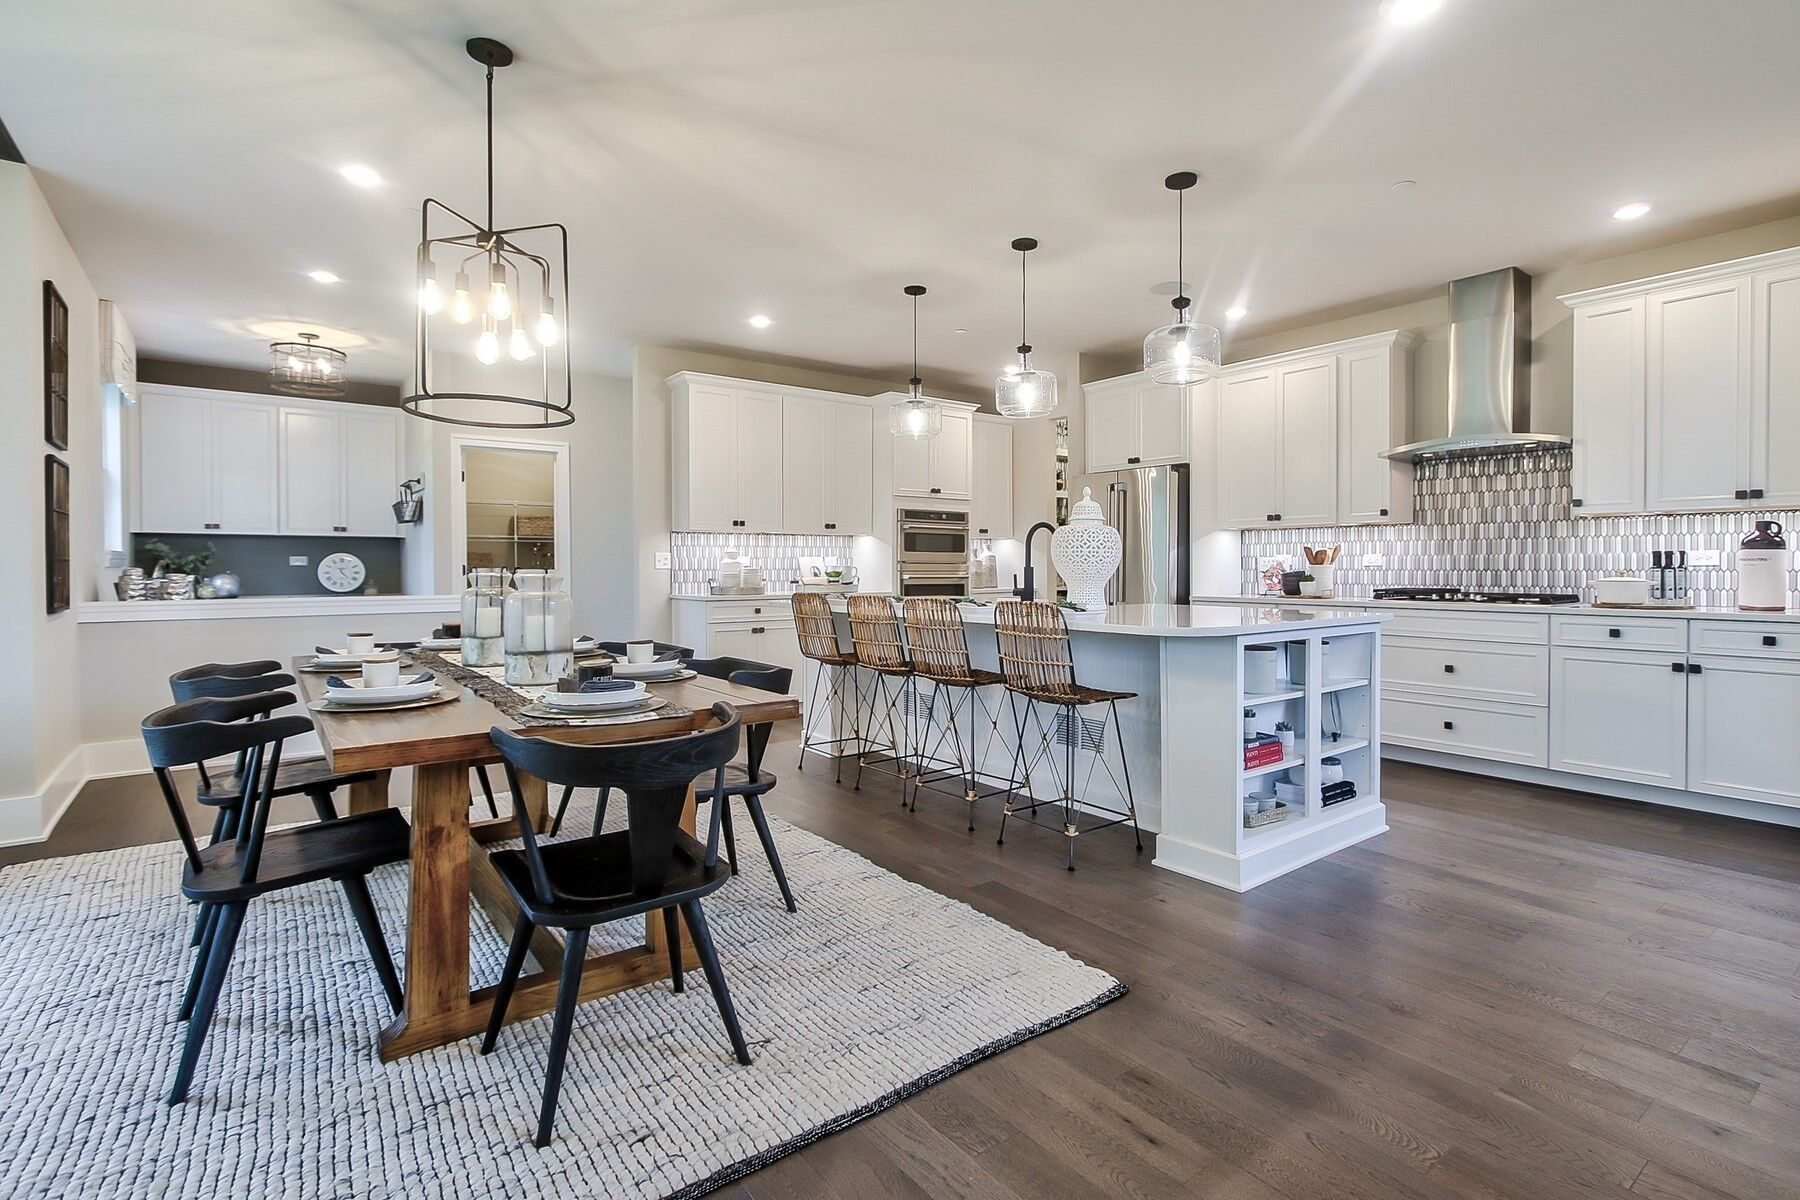 'Wineberry' by M/I Homes-Chicago in Chicago